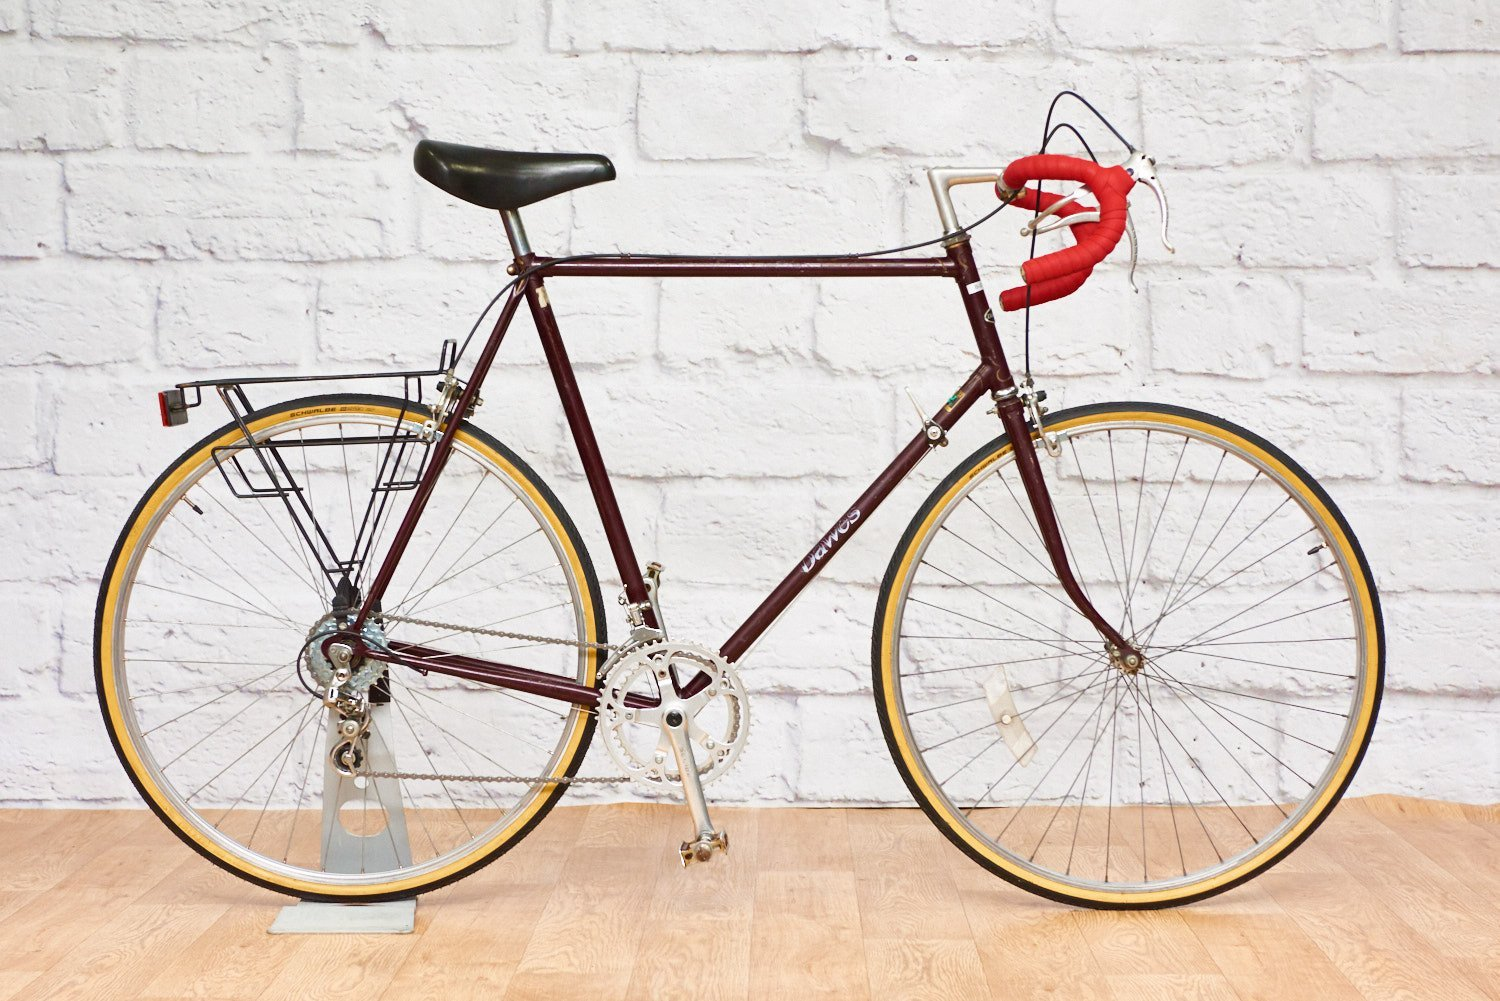 Dawes Vintage Road Racing Bike (65cm frame)